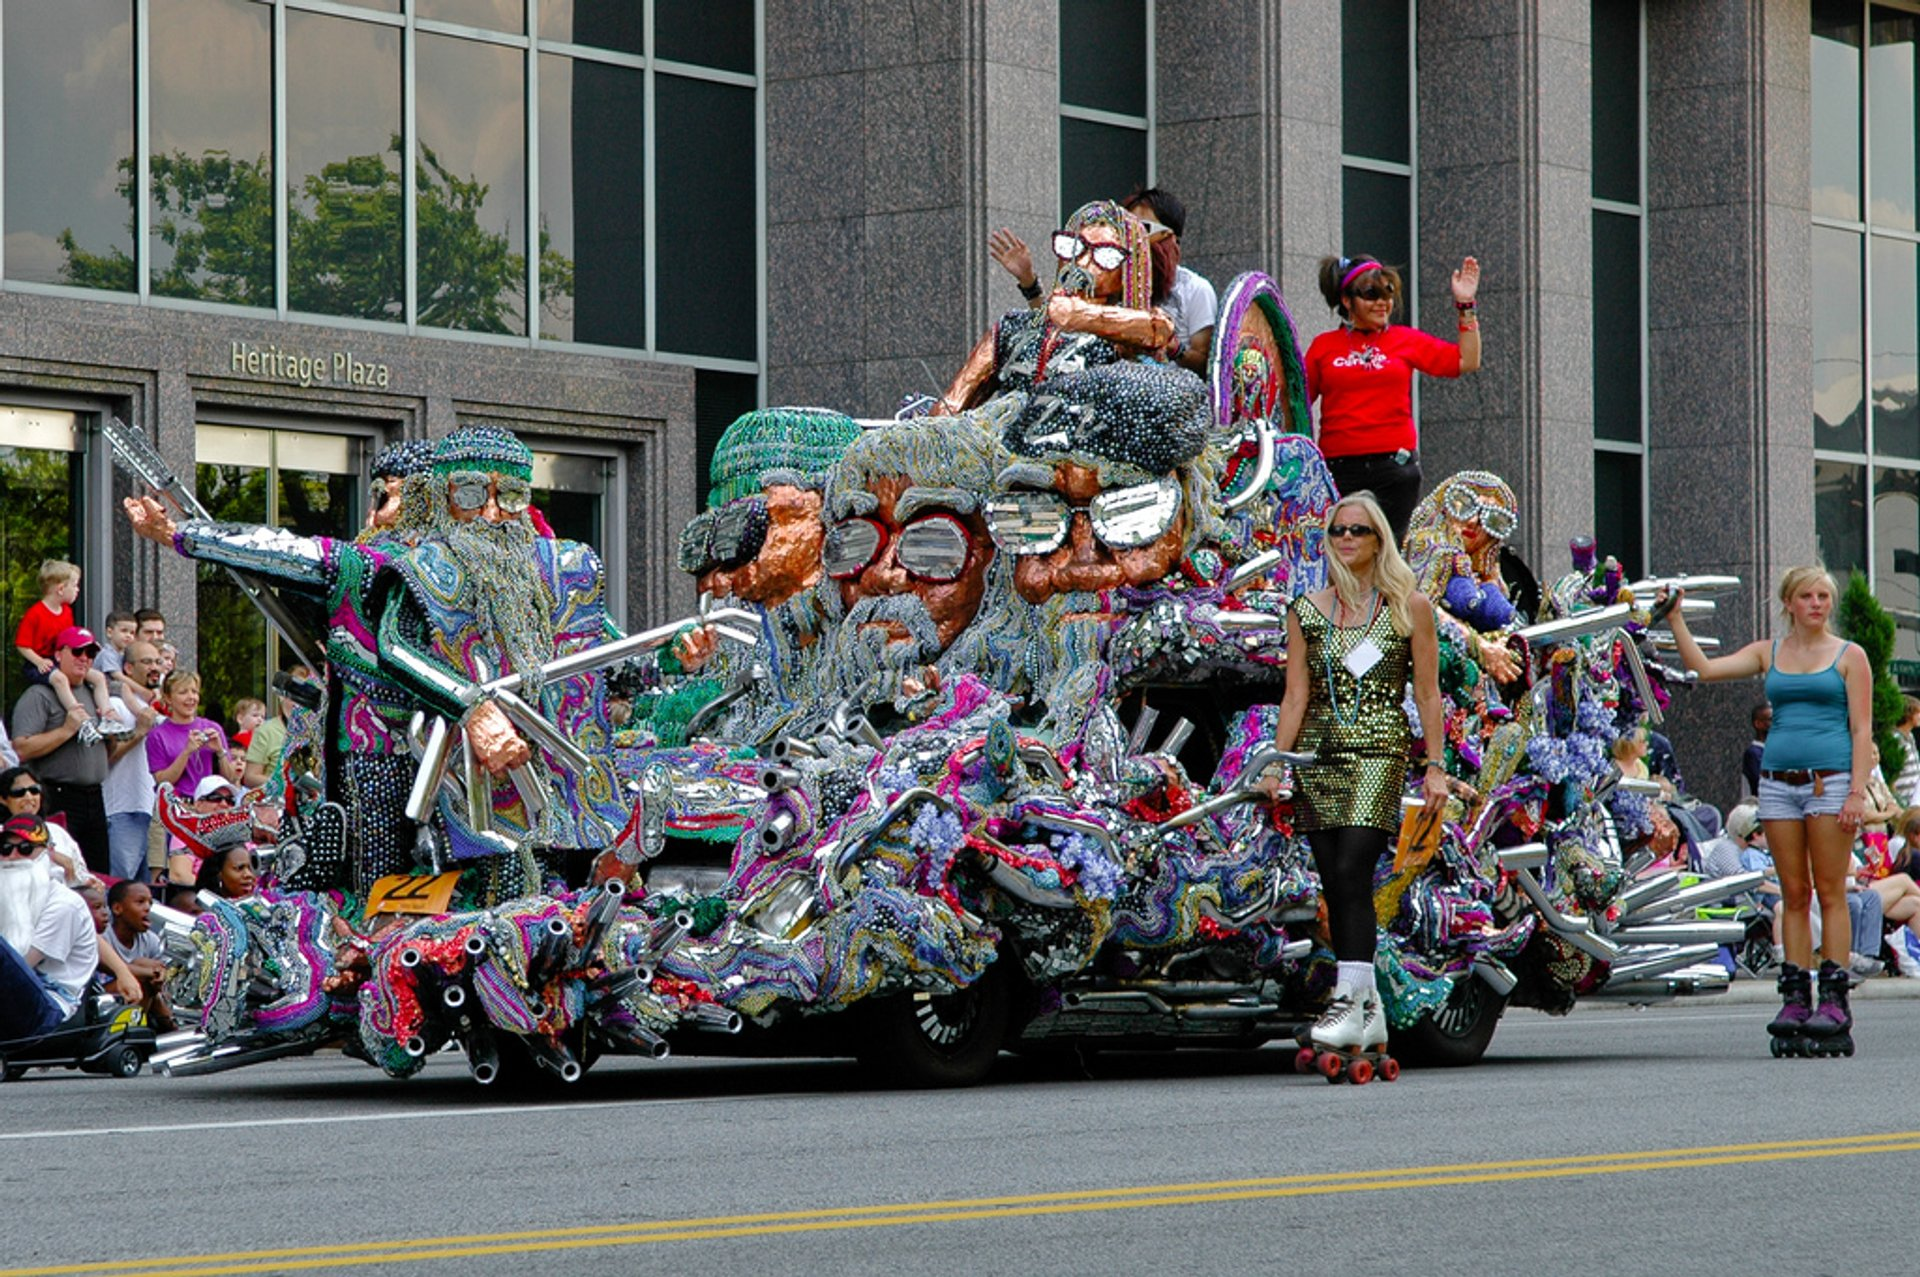 Houston Art Car Parade in Texas 2020 - Best Time